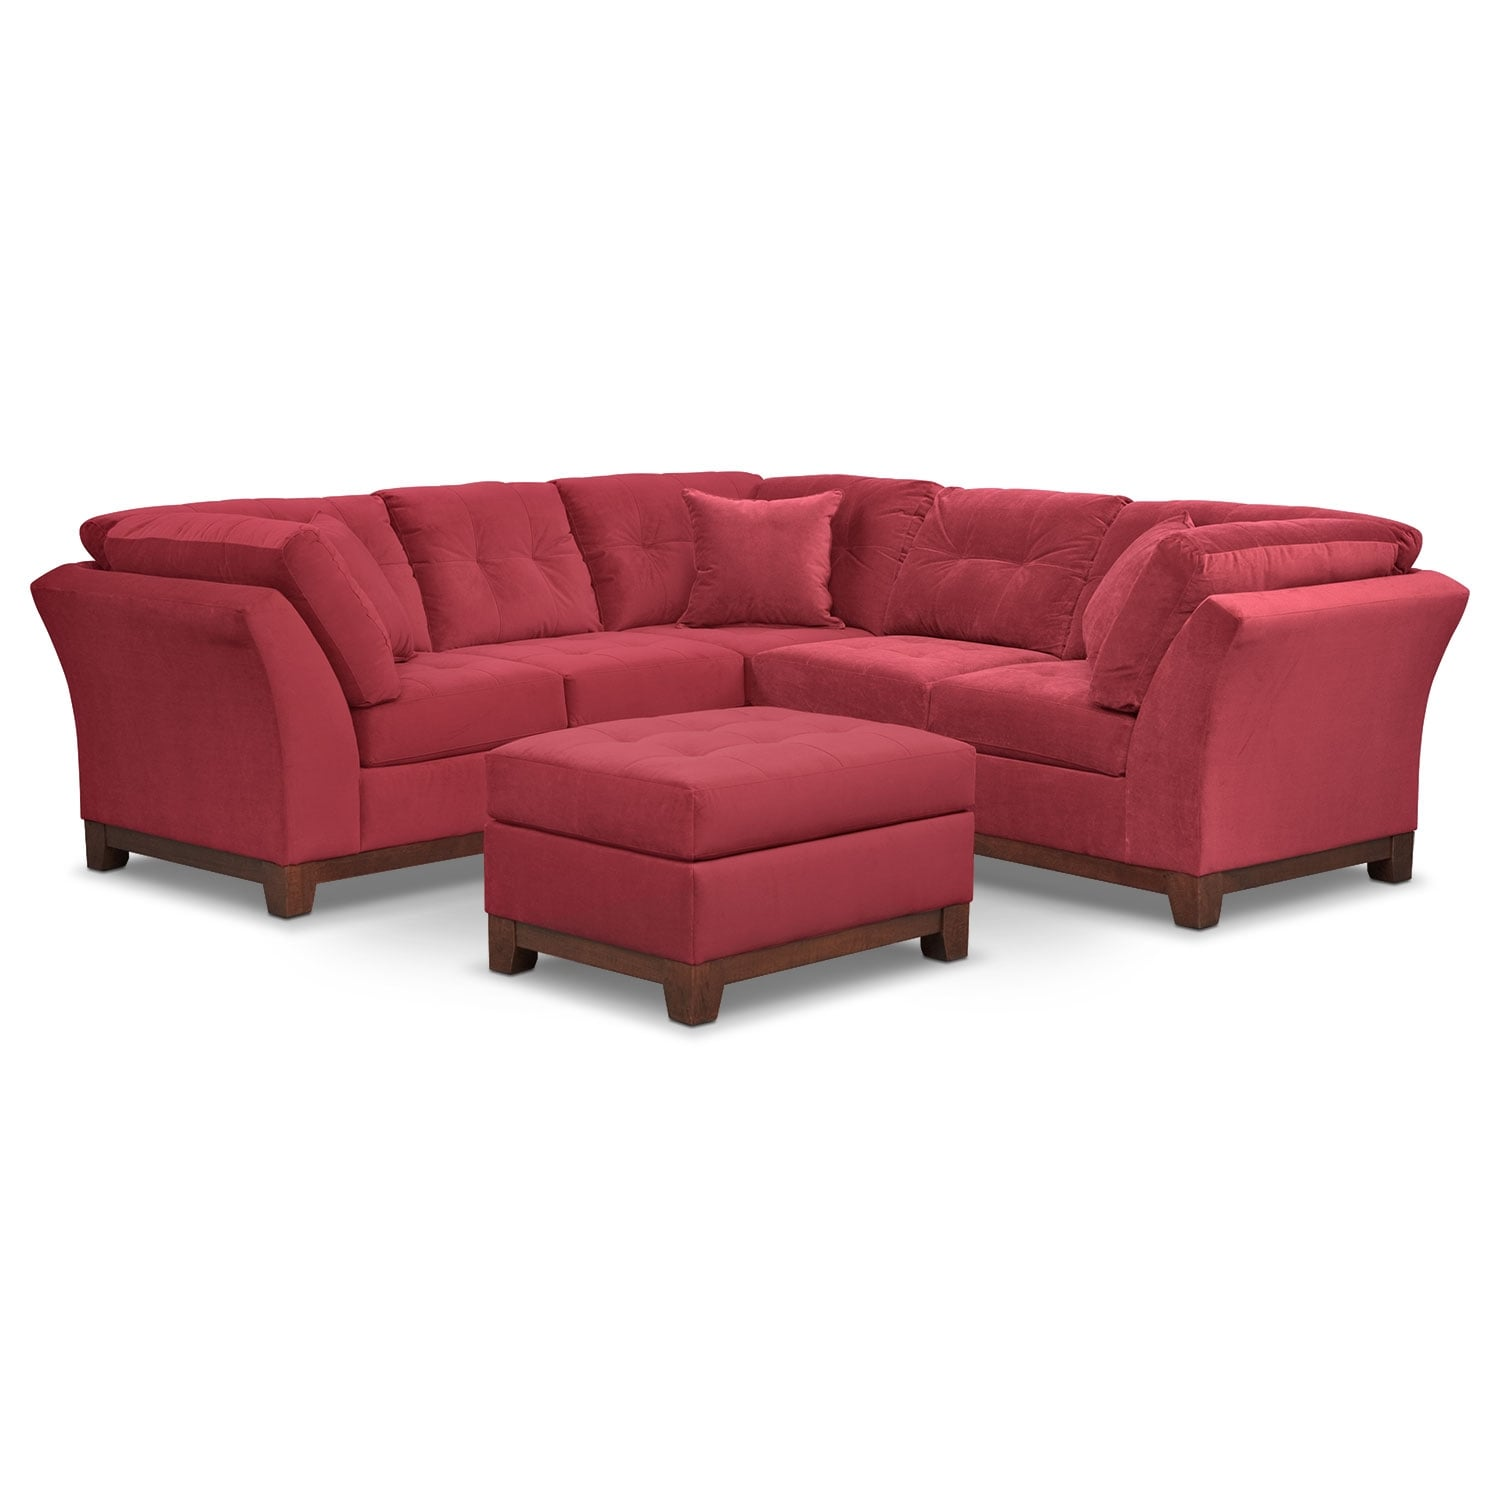 Solace Poppy II 2 Pc. Sectional (Alternate II Reverse) and Ottoman